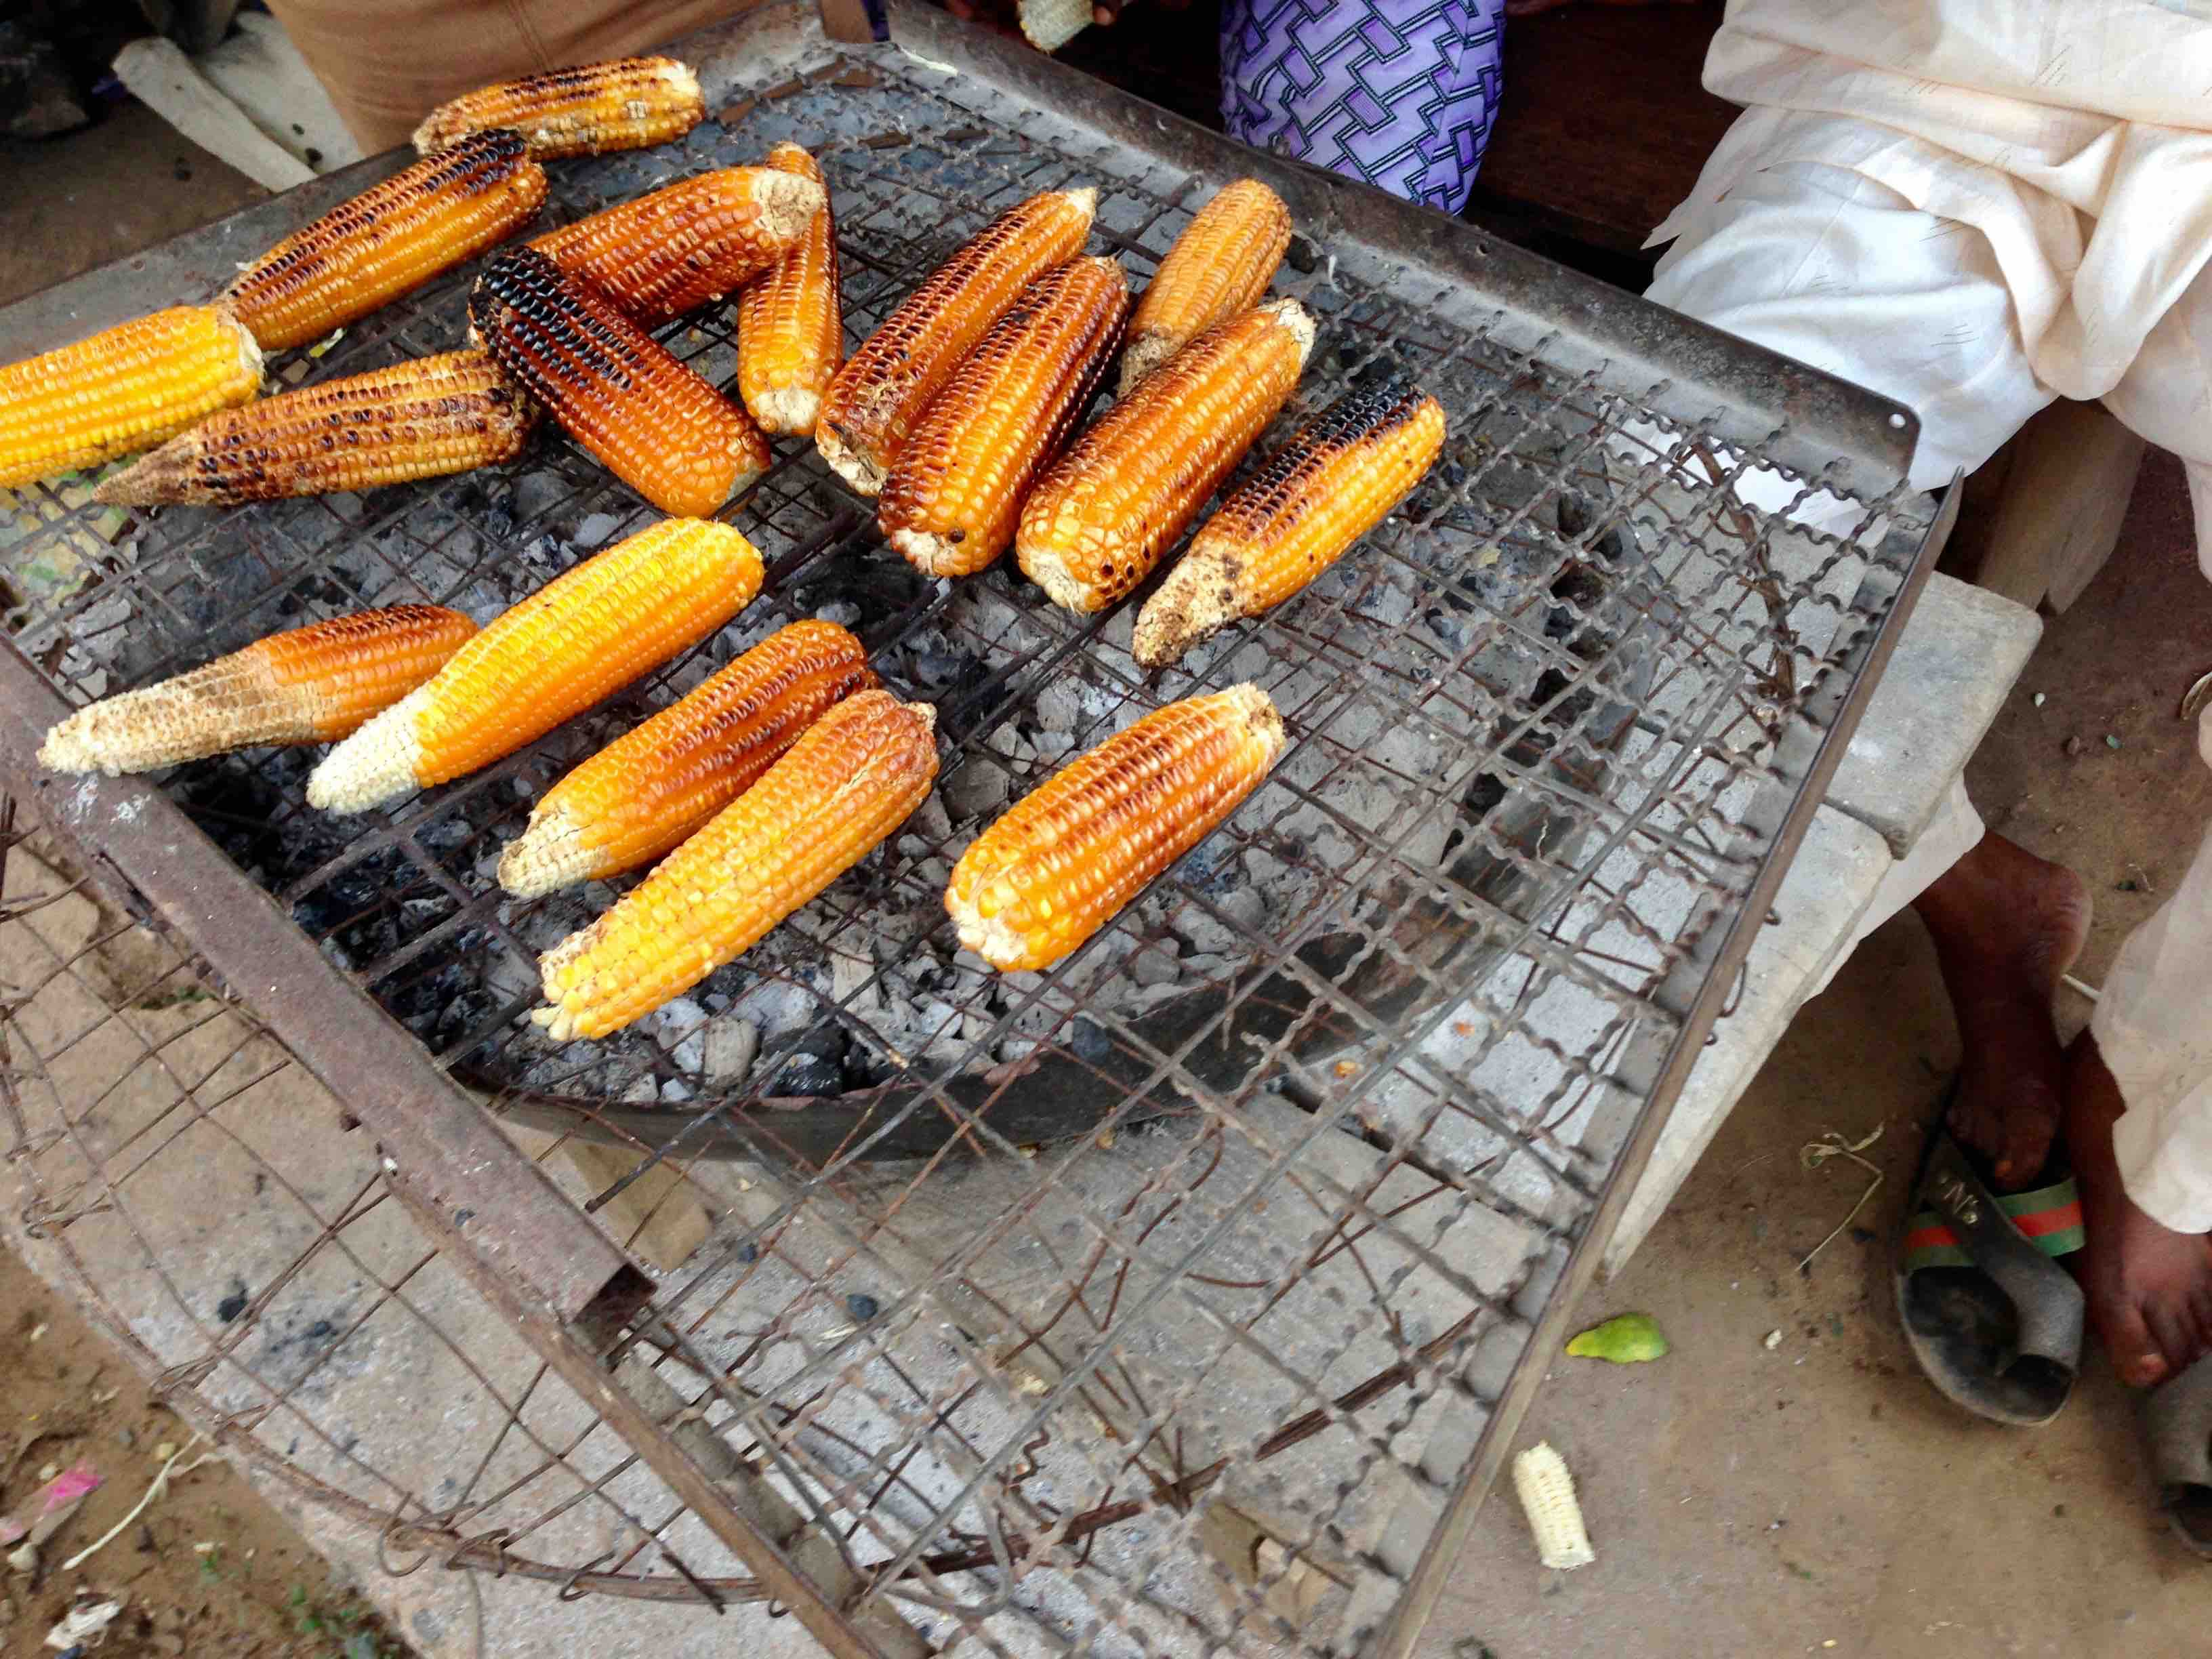 Roasting corn on open fire grill, Oke Omiru, Ilesa, Osun State, Nigeria. #JujuFilms